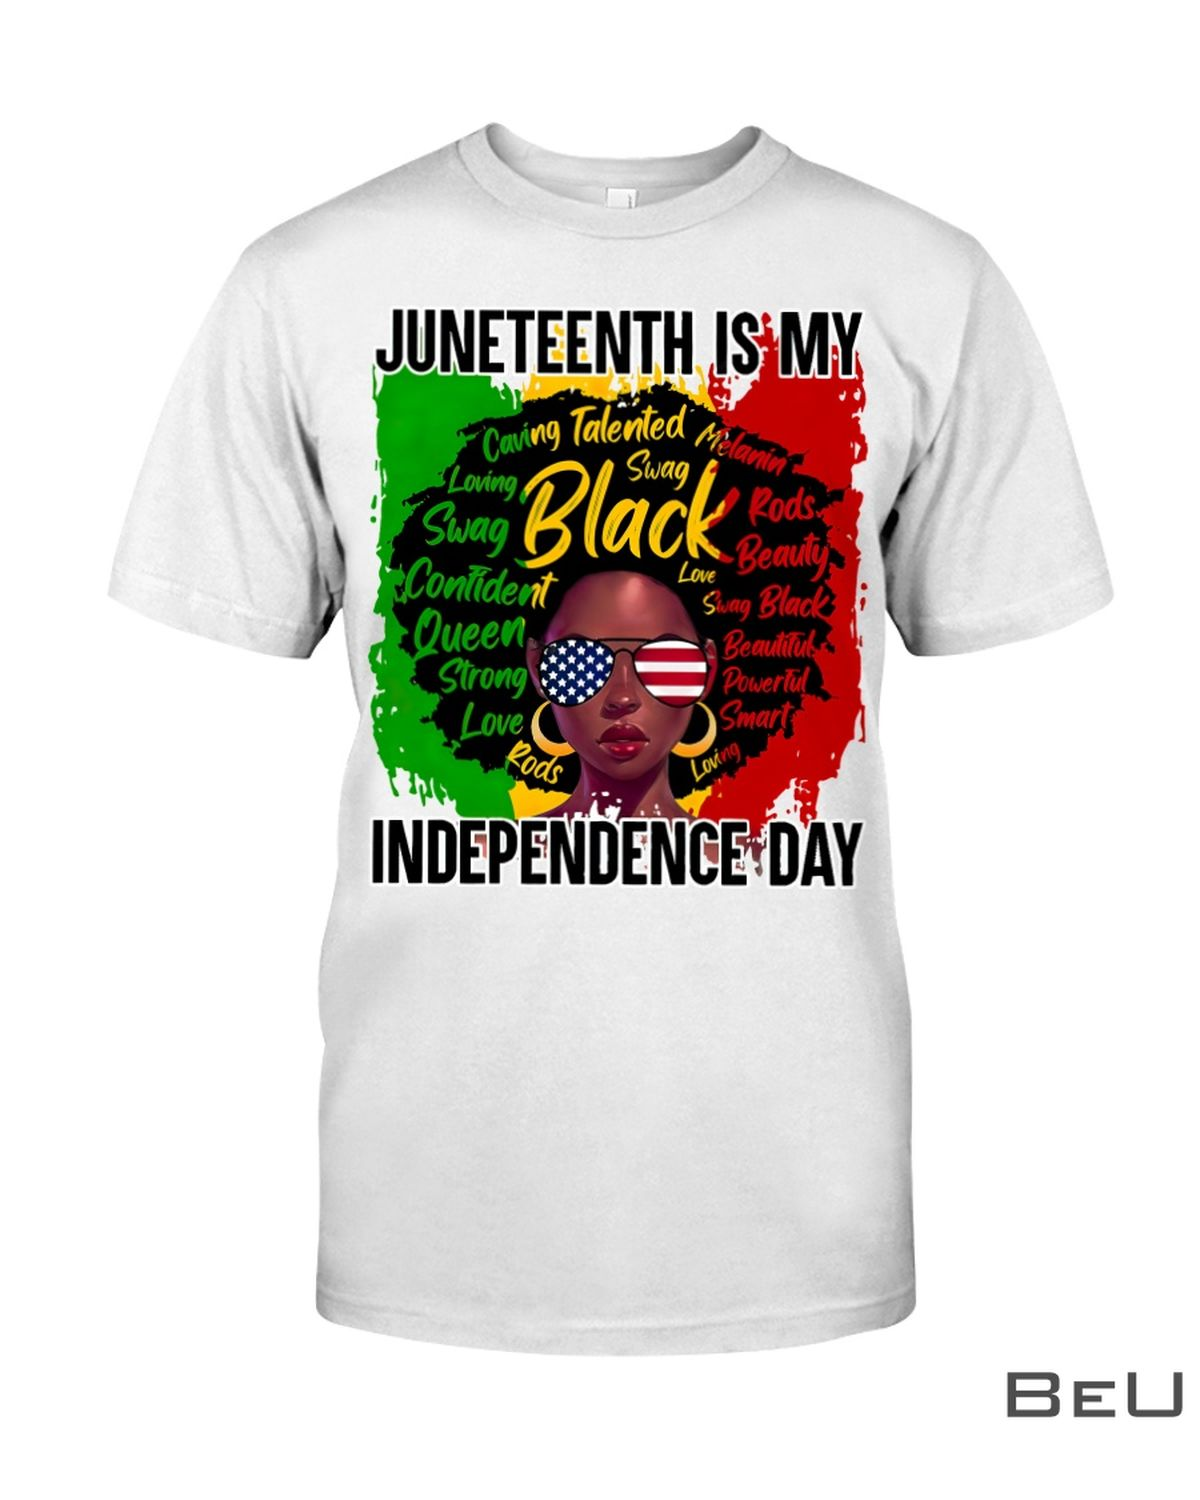 Juneteenth Is My Independence Day Shirt